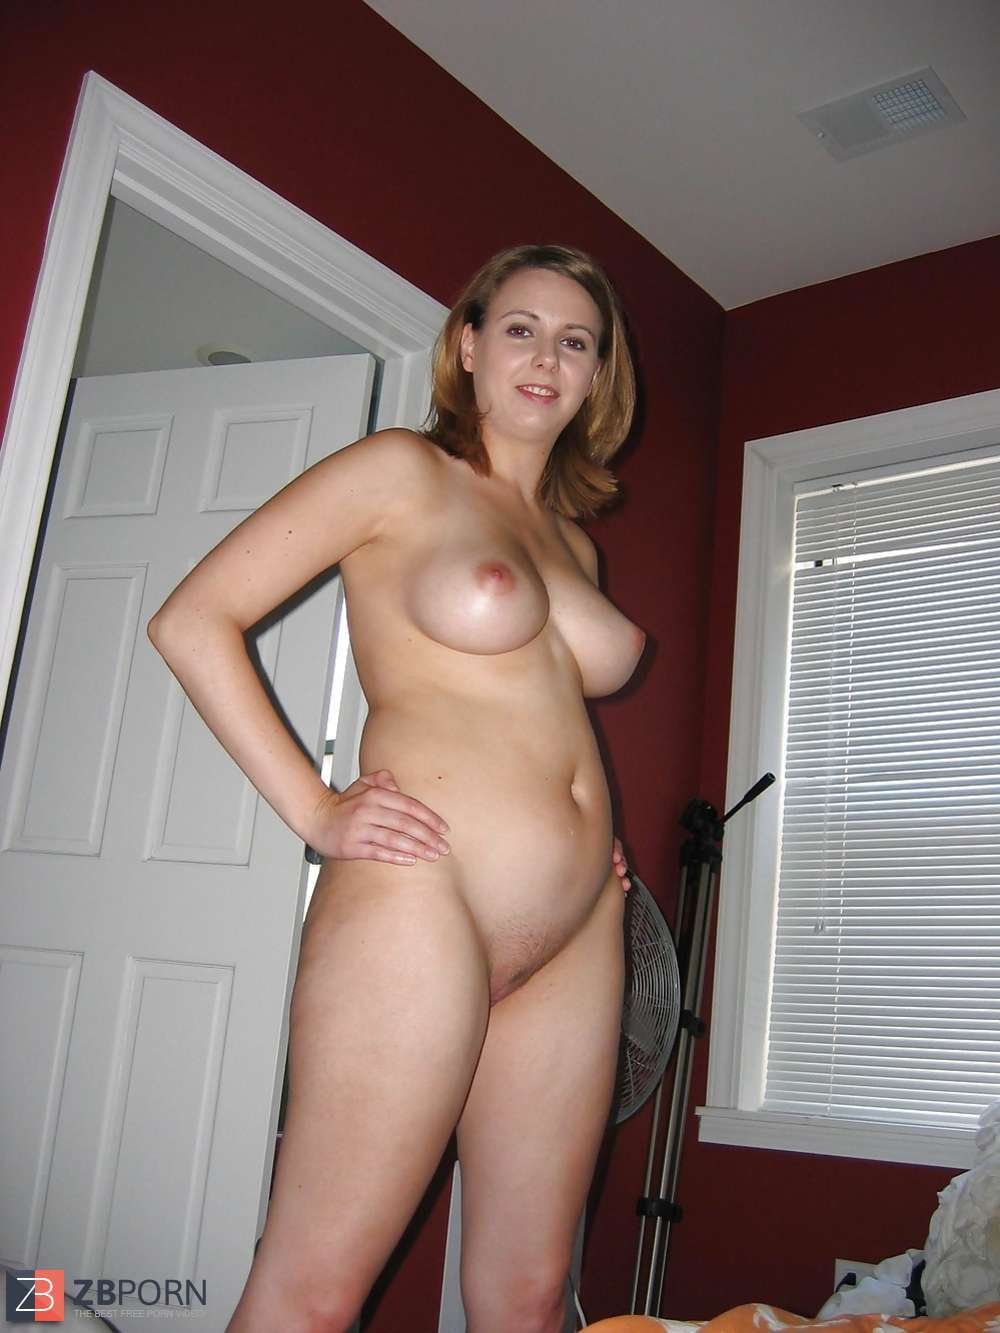 You have pregnant hillbilly women nude are mistaken